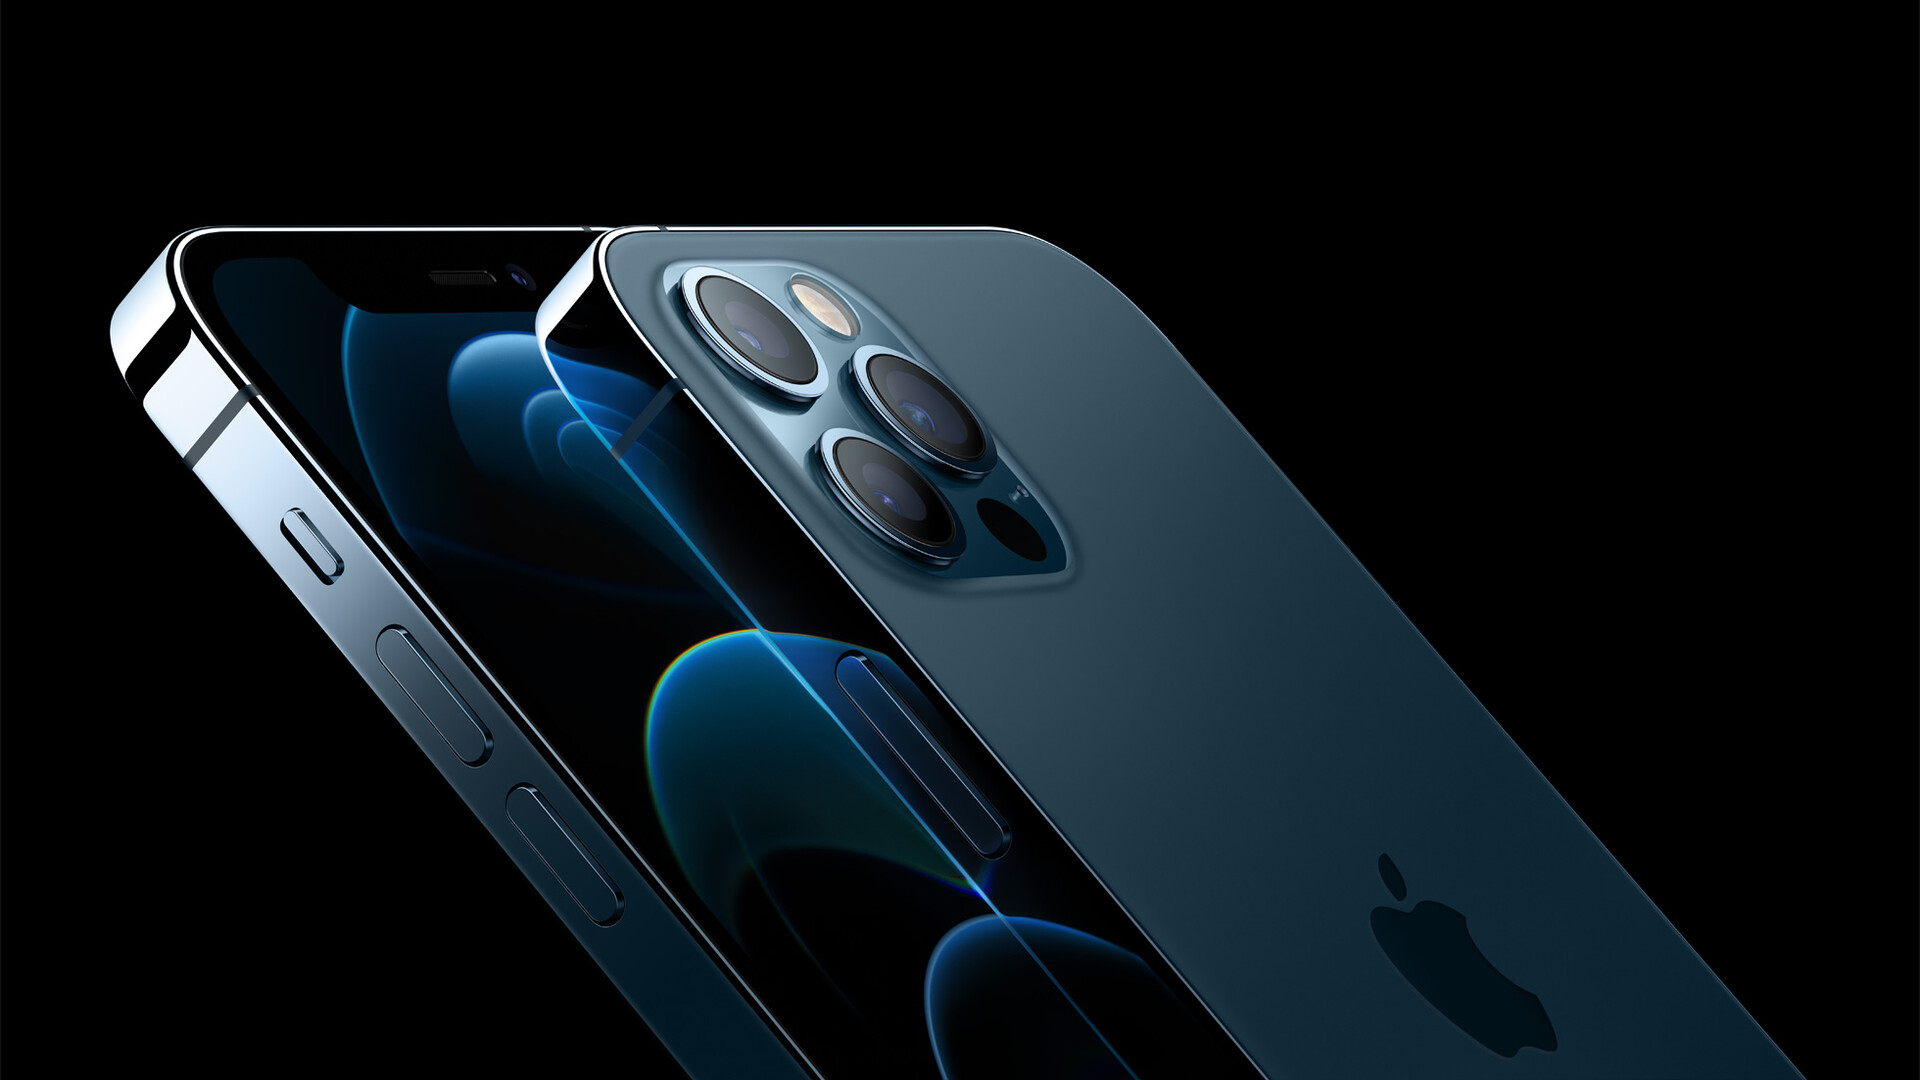 Apple Releases The Iphone 12 Mini And Pro Max Variants Amidst A Wireless Charging Controversy Notebookcheck Net News 2021 new product is suitable for iphone12 official magnetic wireless charger apple 12magsafe charger magnetic wireless charger. apple releases the iphone 12 mini and